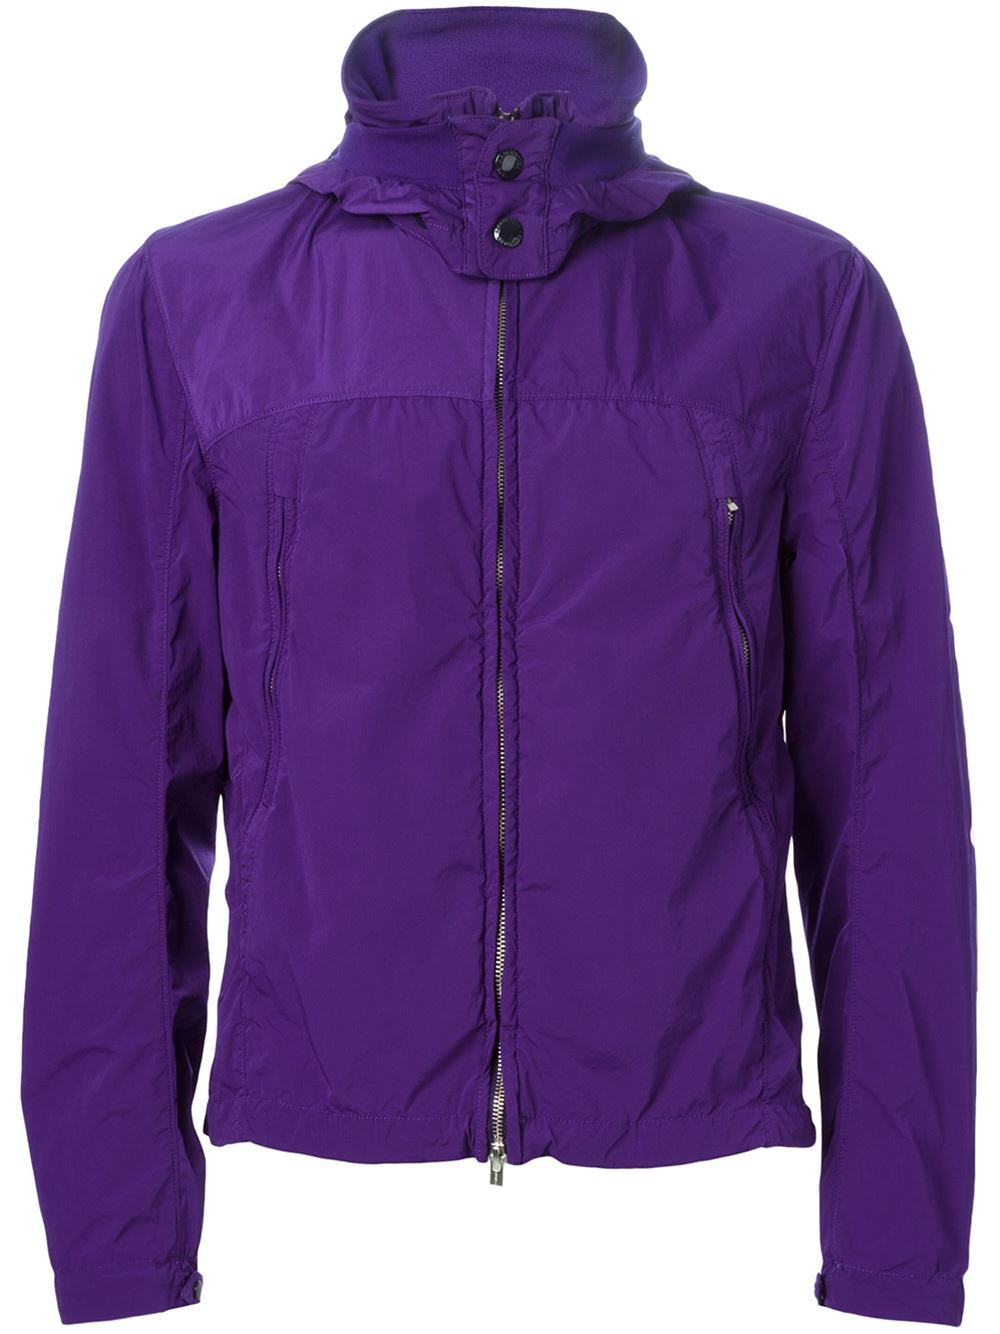 c p company goggle hood jacket in purple for men lyst